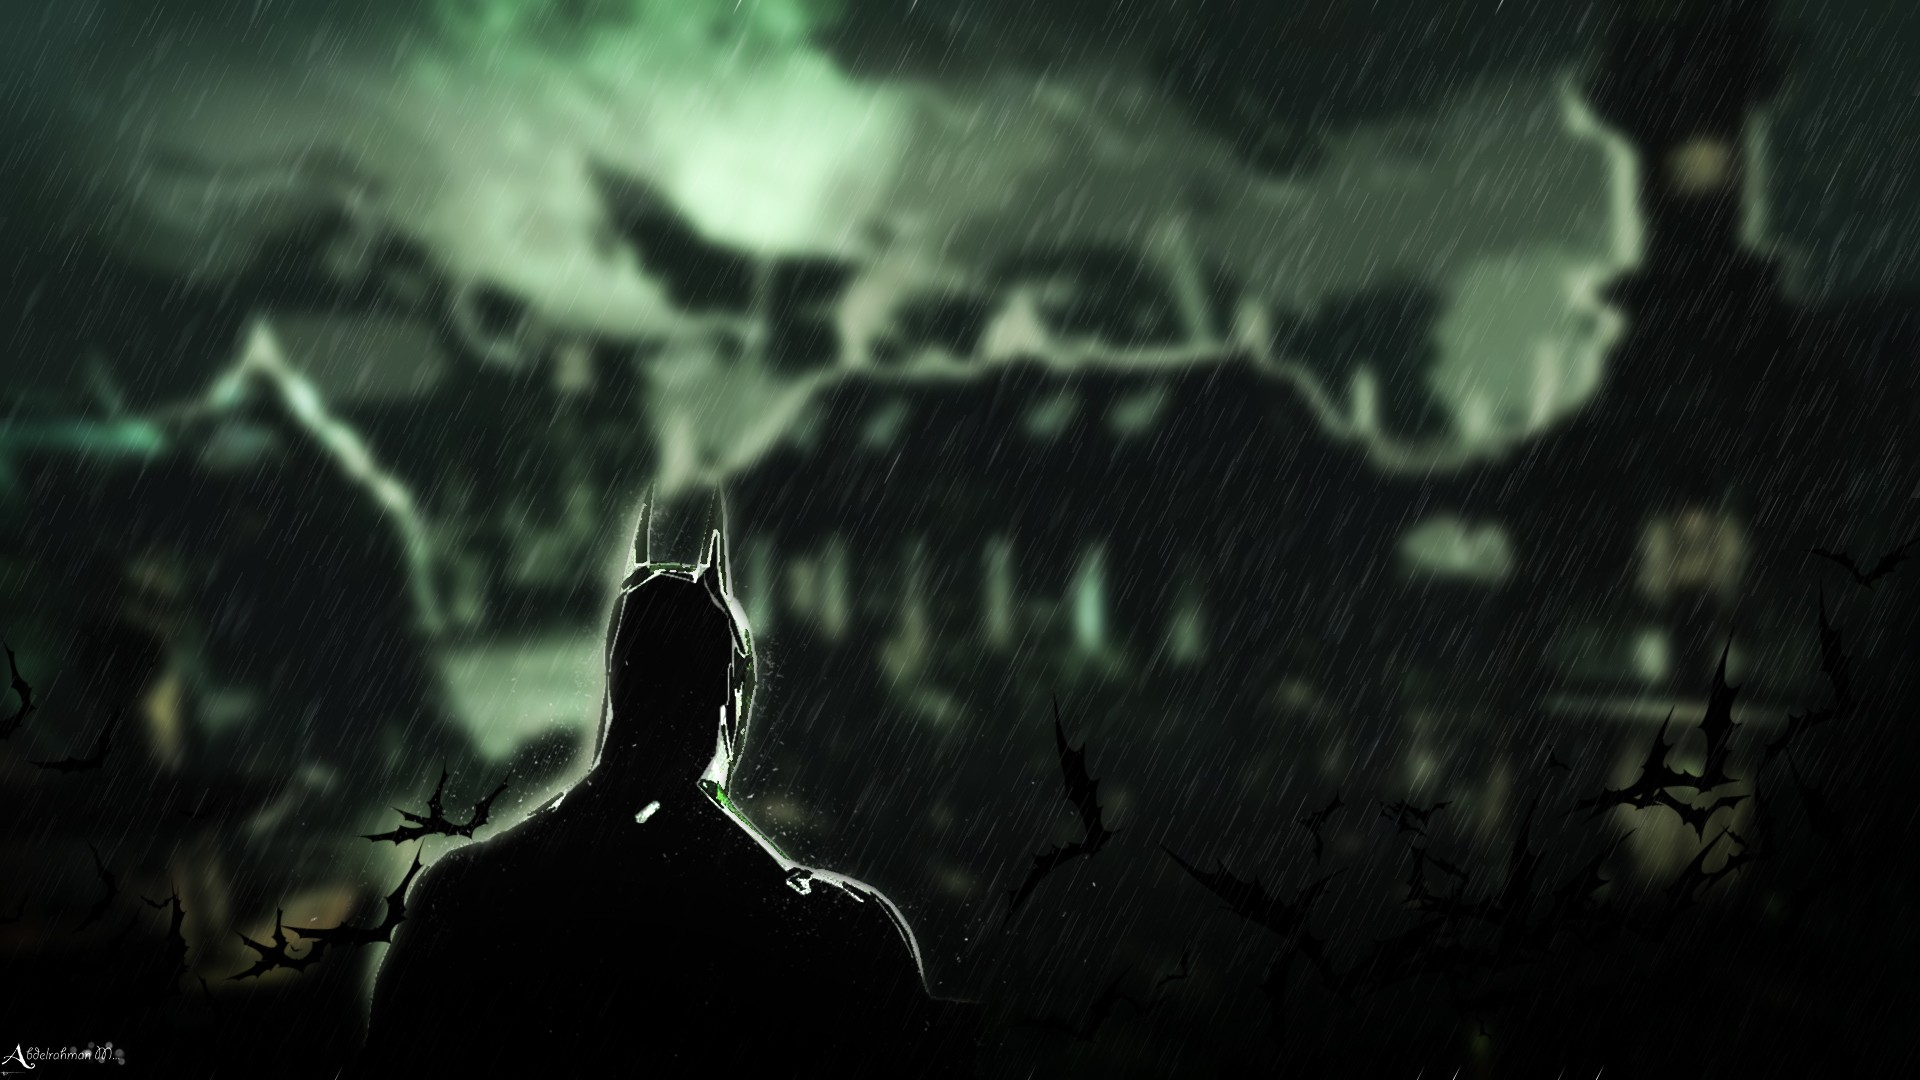 Batman Rain Wallpaper 1920x1080 Batman Rain Knight Batman Arkham 1920x1080